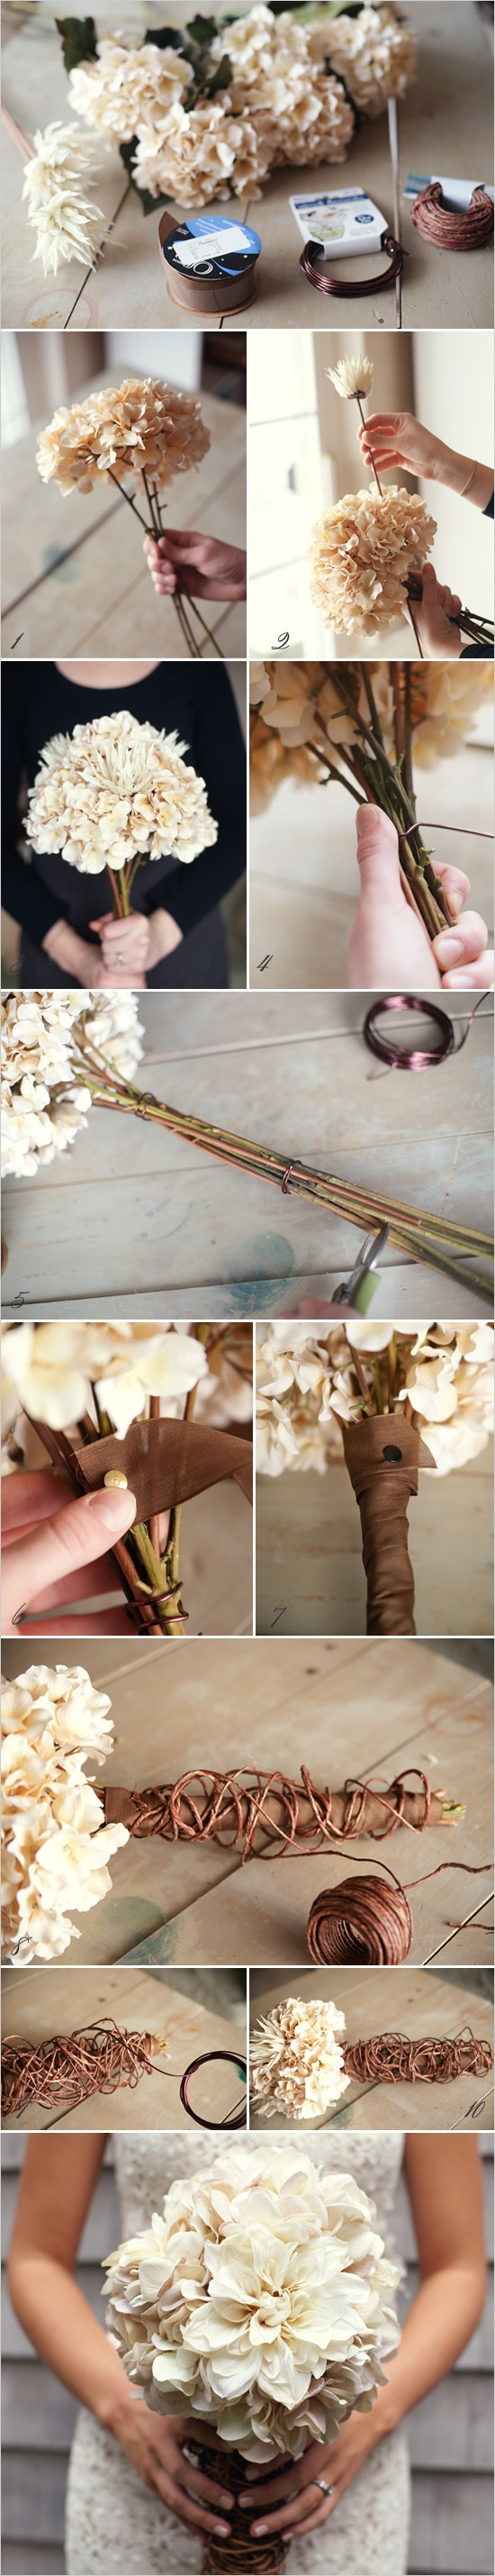 best images about diy on pinterest snowflakes shelves and card